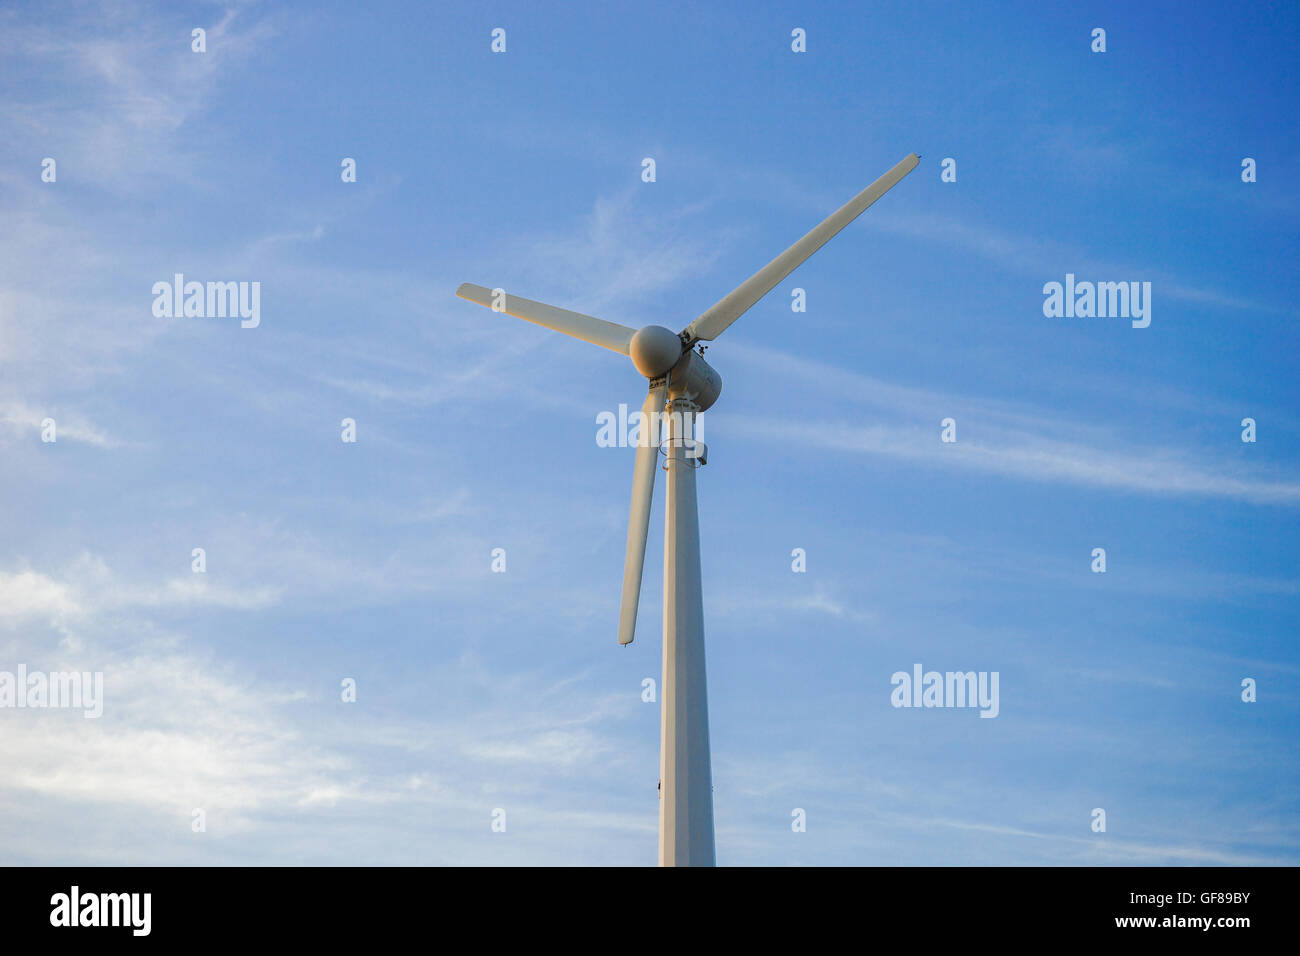 wind turbine against partly cloudy blue sky - Stock Image